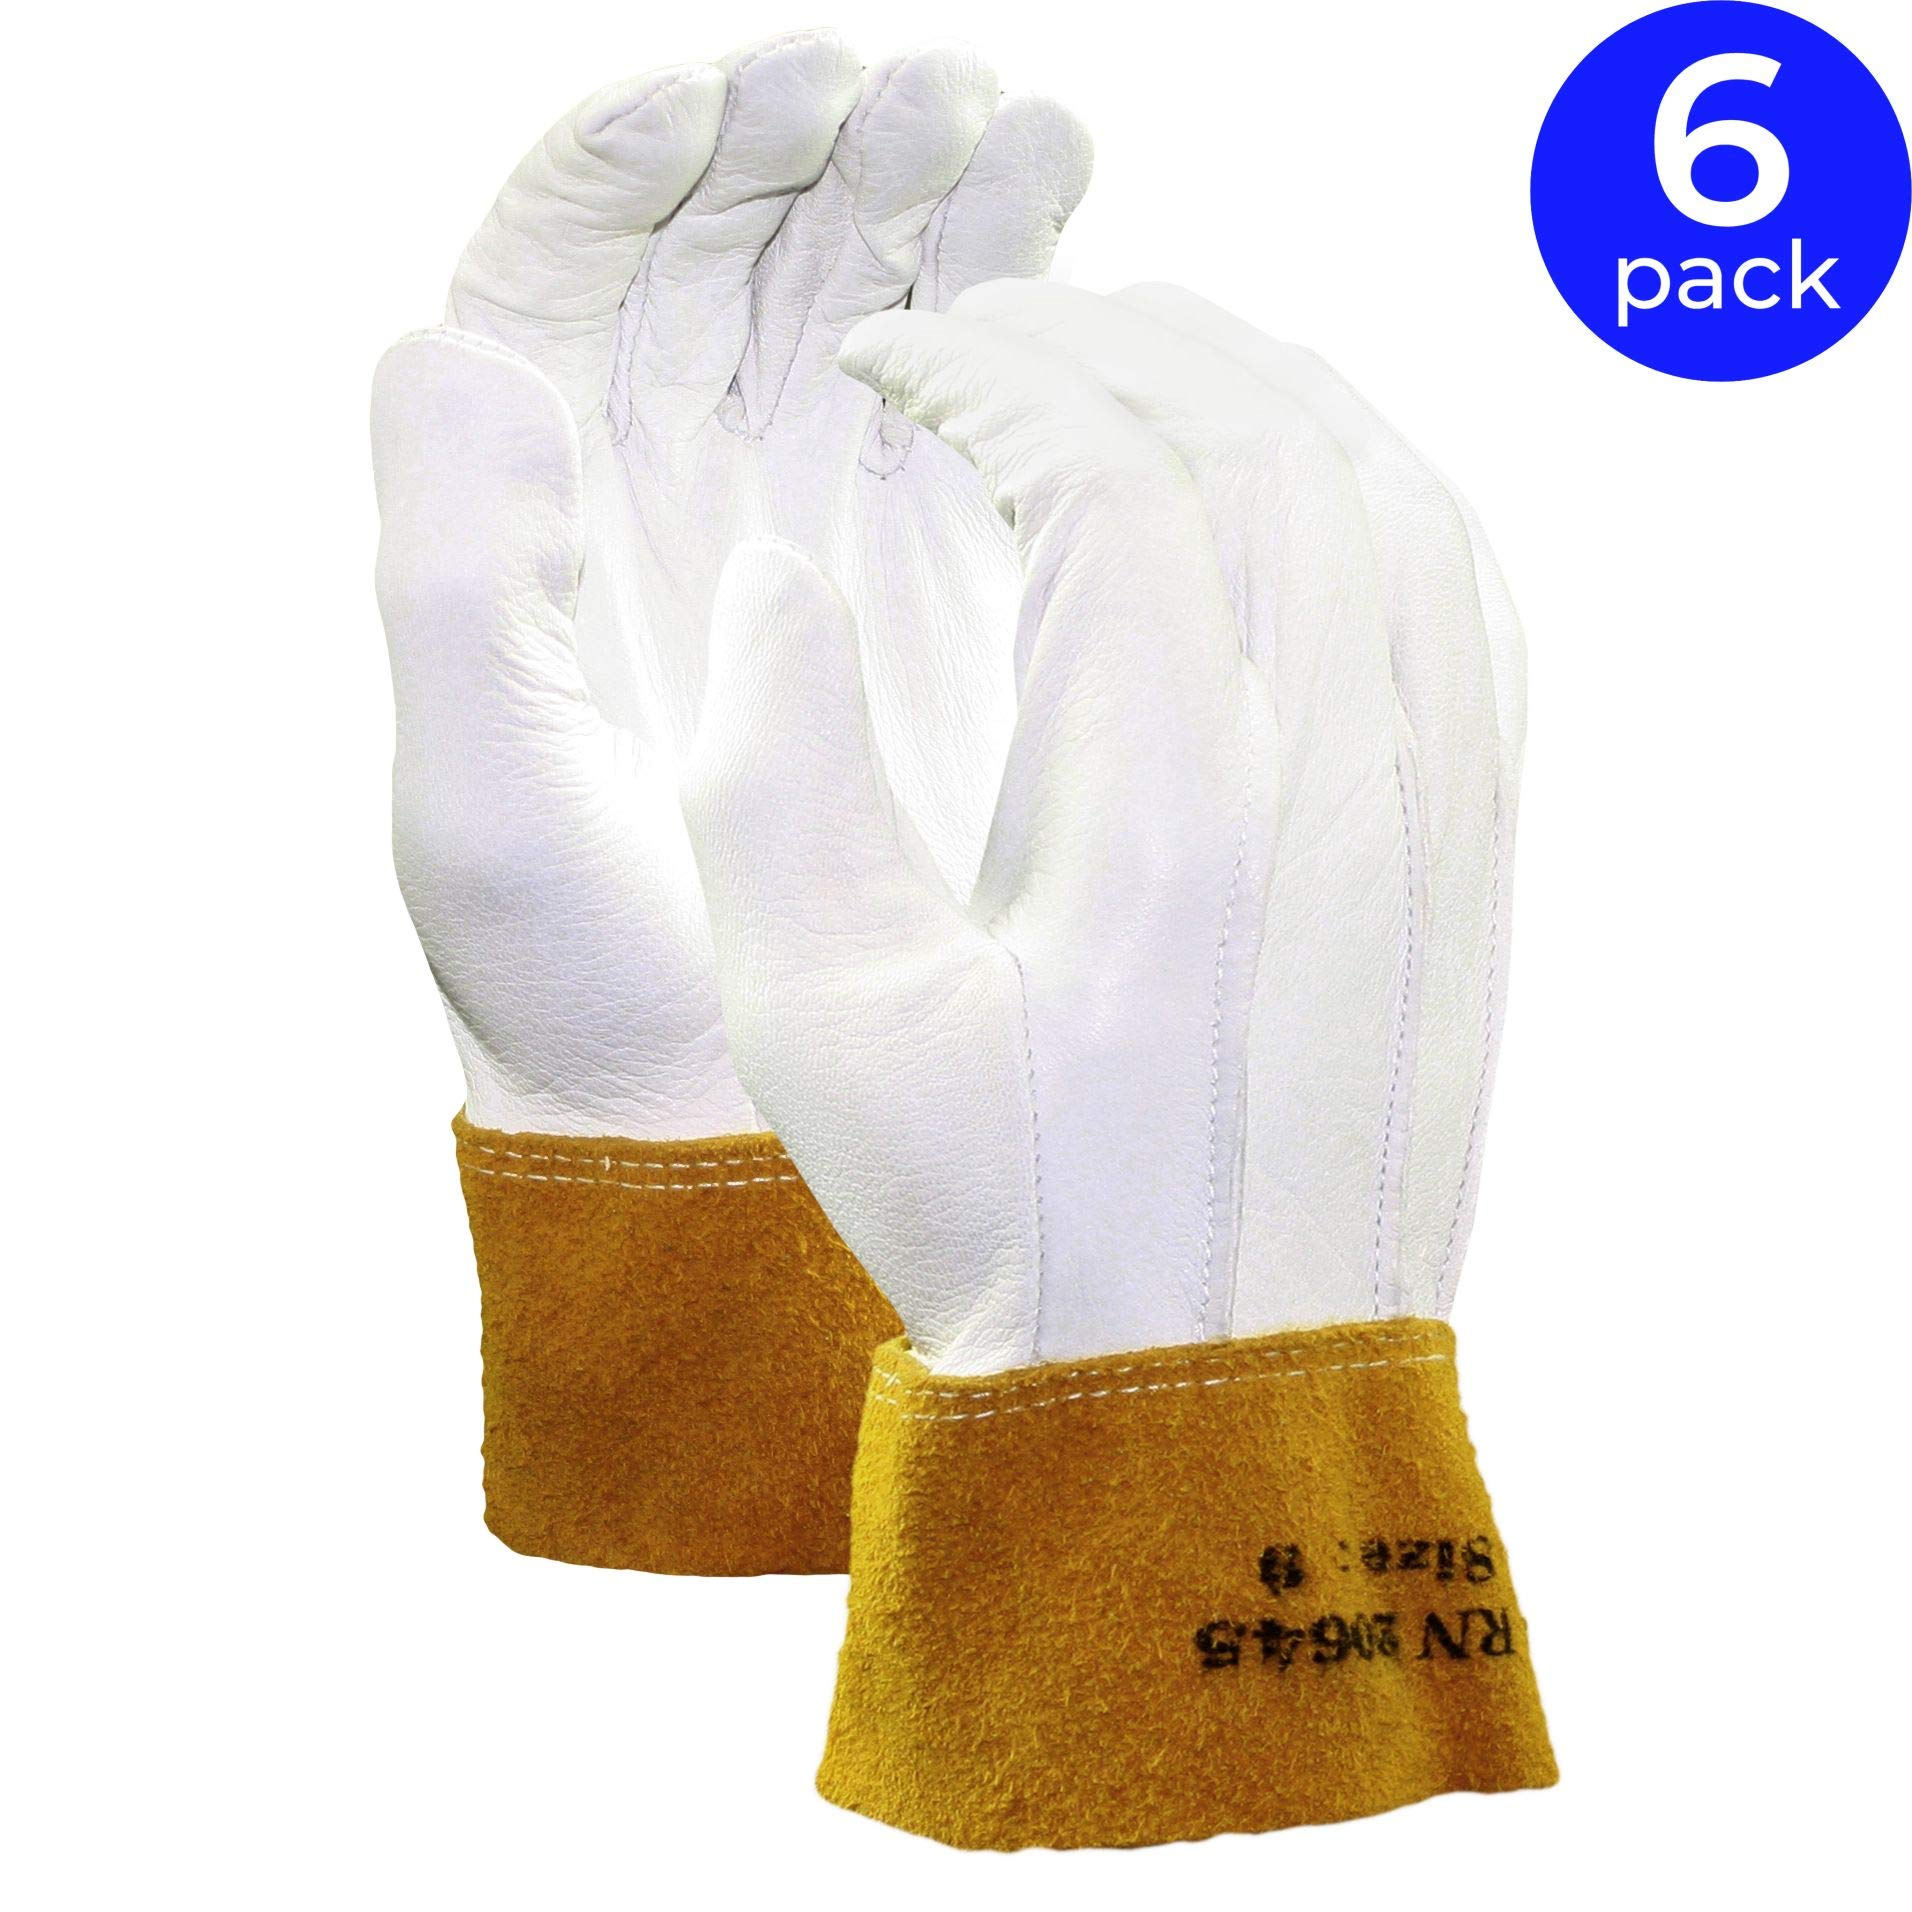 Stauffer Goatskin MIG/TIG Welding Gloves with Leather Cuff | Gold/White Color, Cut and Sewn, Select Grade, Unlined Lining - Medium (Pack of 6)